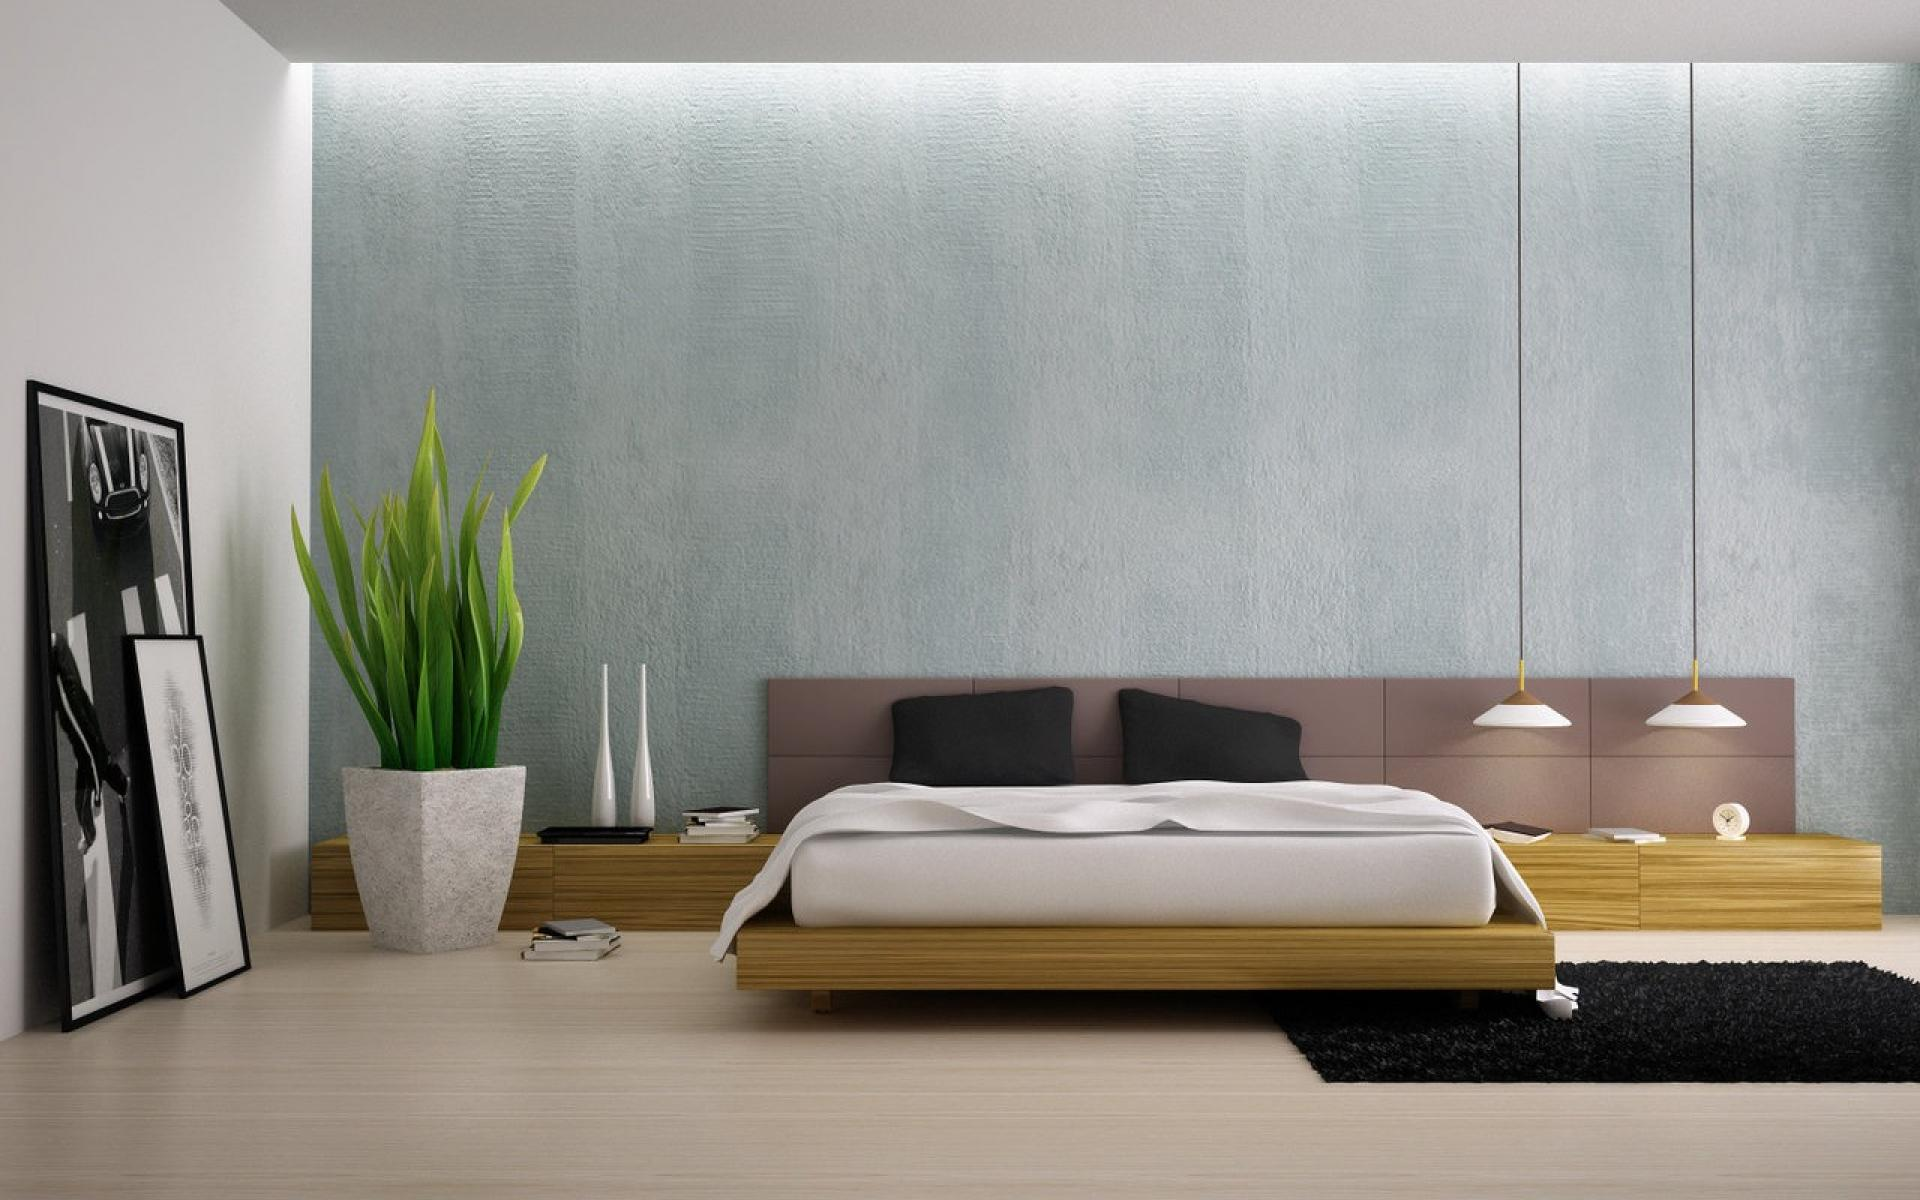 Wall Paper Interior Design predicting 2016 interior design trends from our interior design blog at design connection inc Minimalist Interior Design Wallpapers And Stock Photos